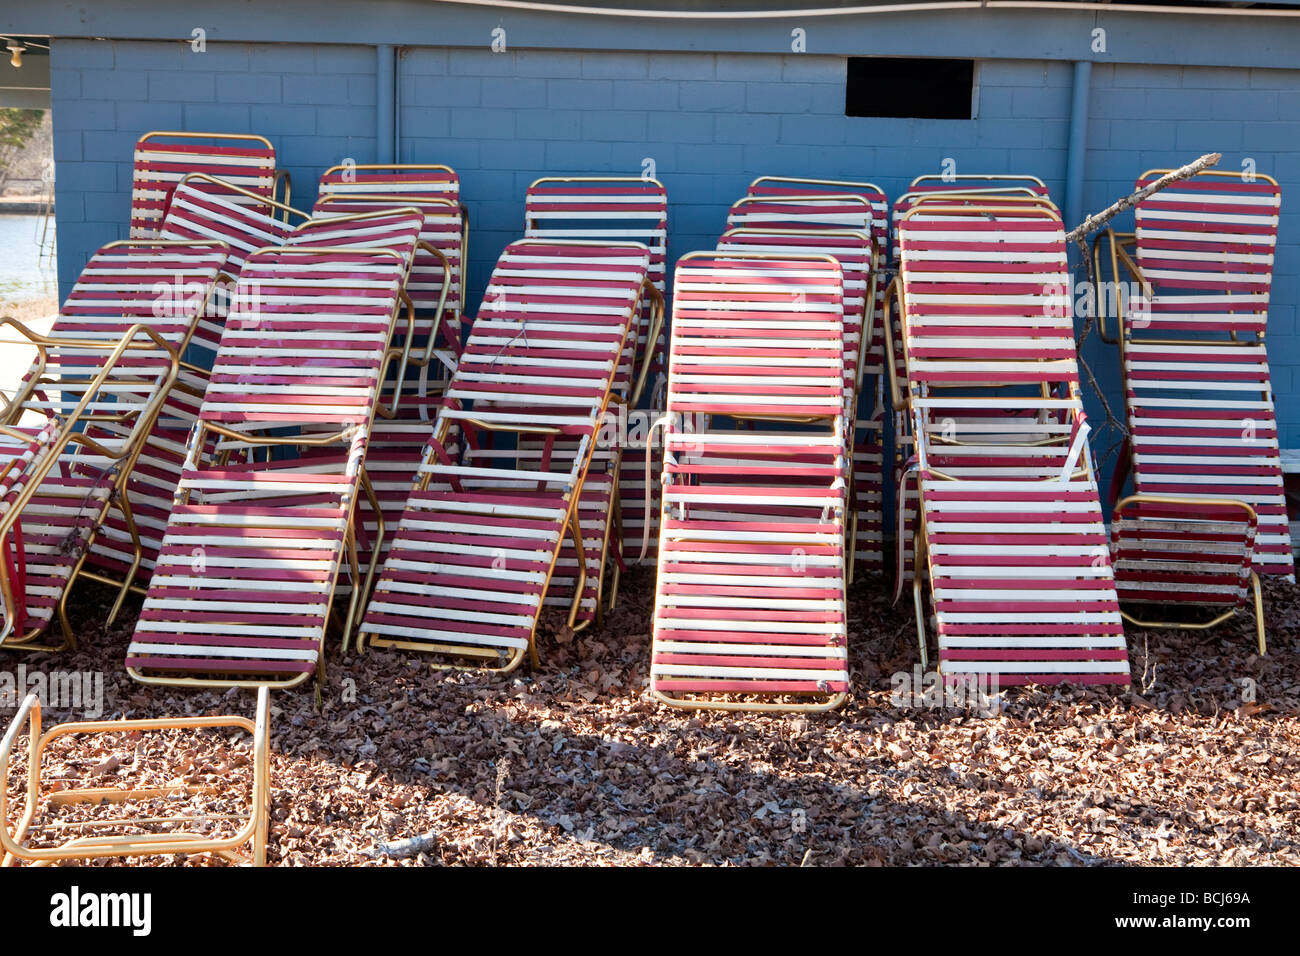 Admirable White And Red Striped Chaise Lounge Chairs In Storage Ibusinesslaw Wood Chair Design Ideas Ibusinesslaworg